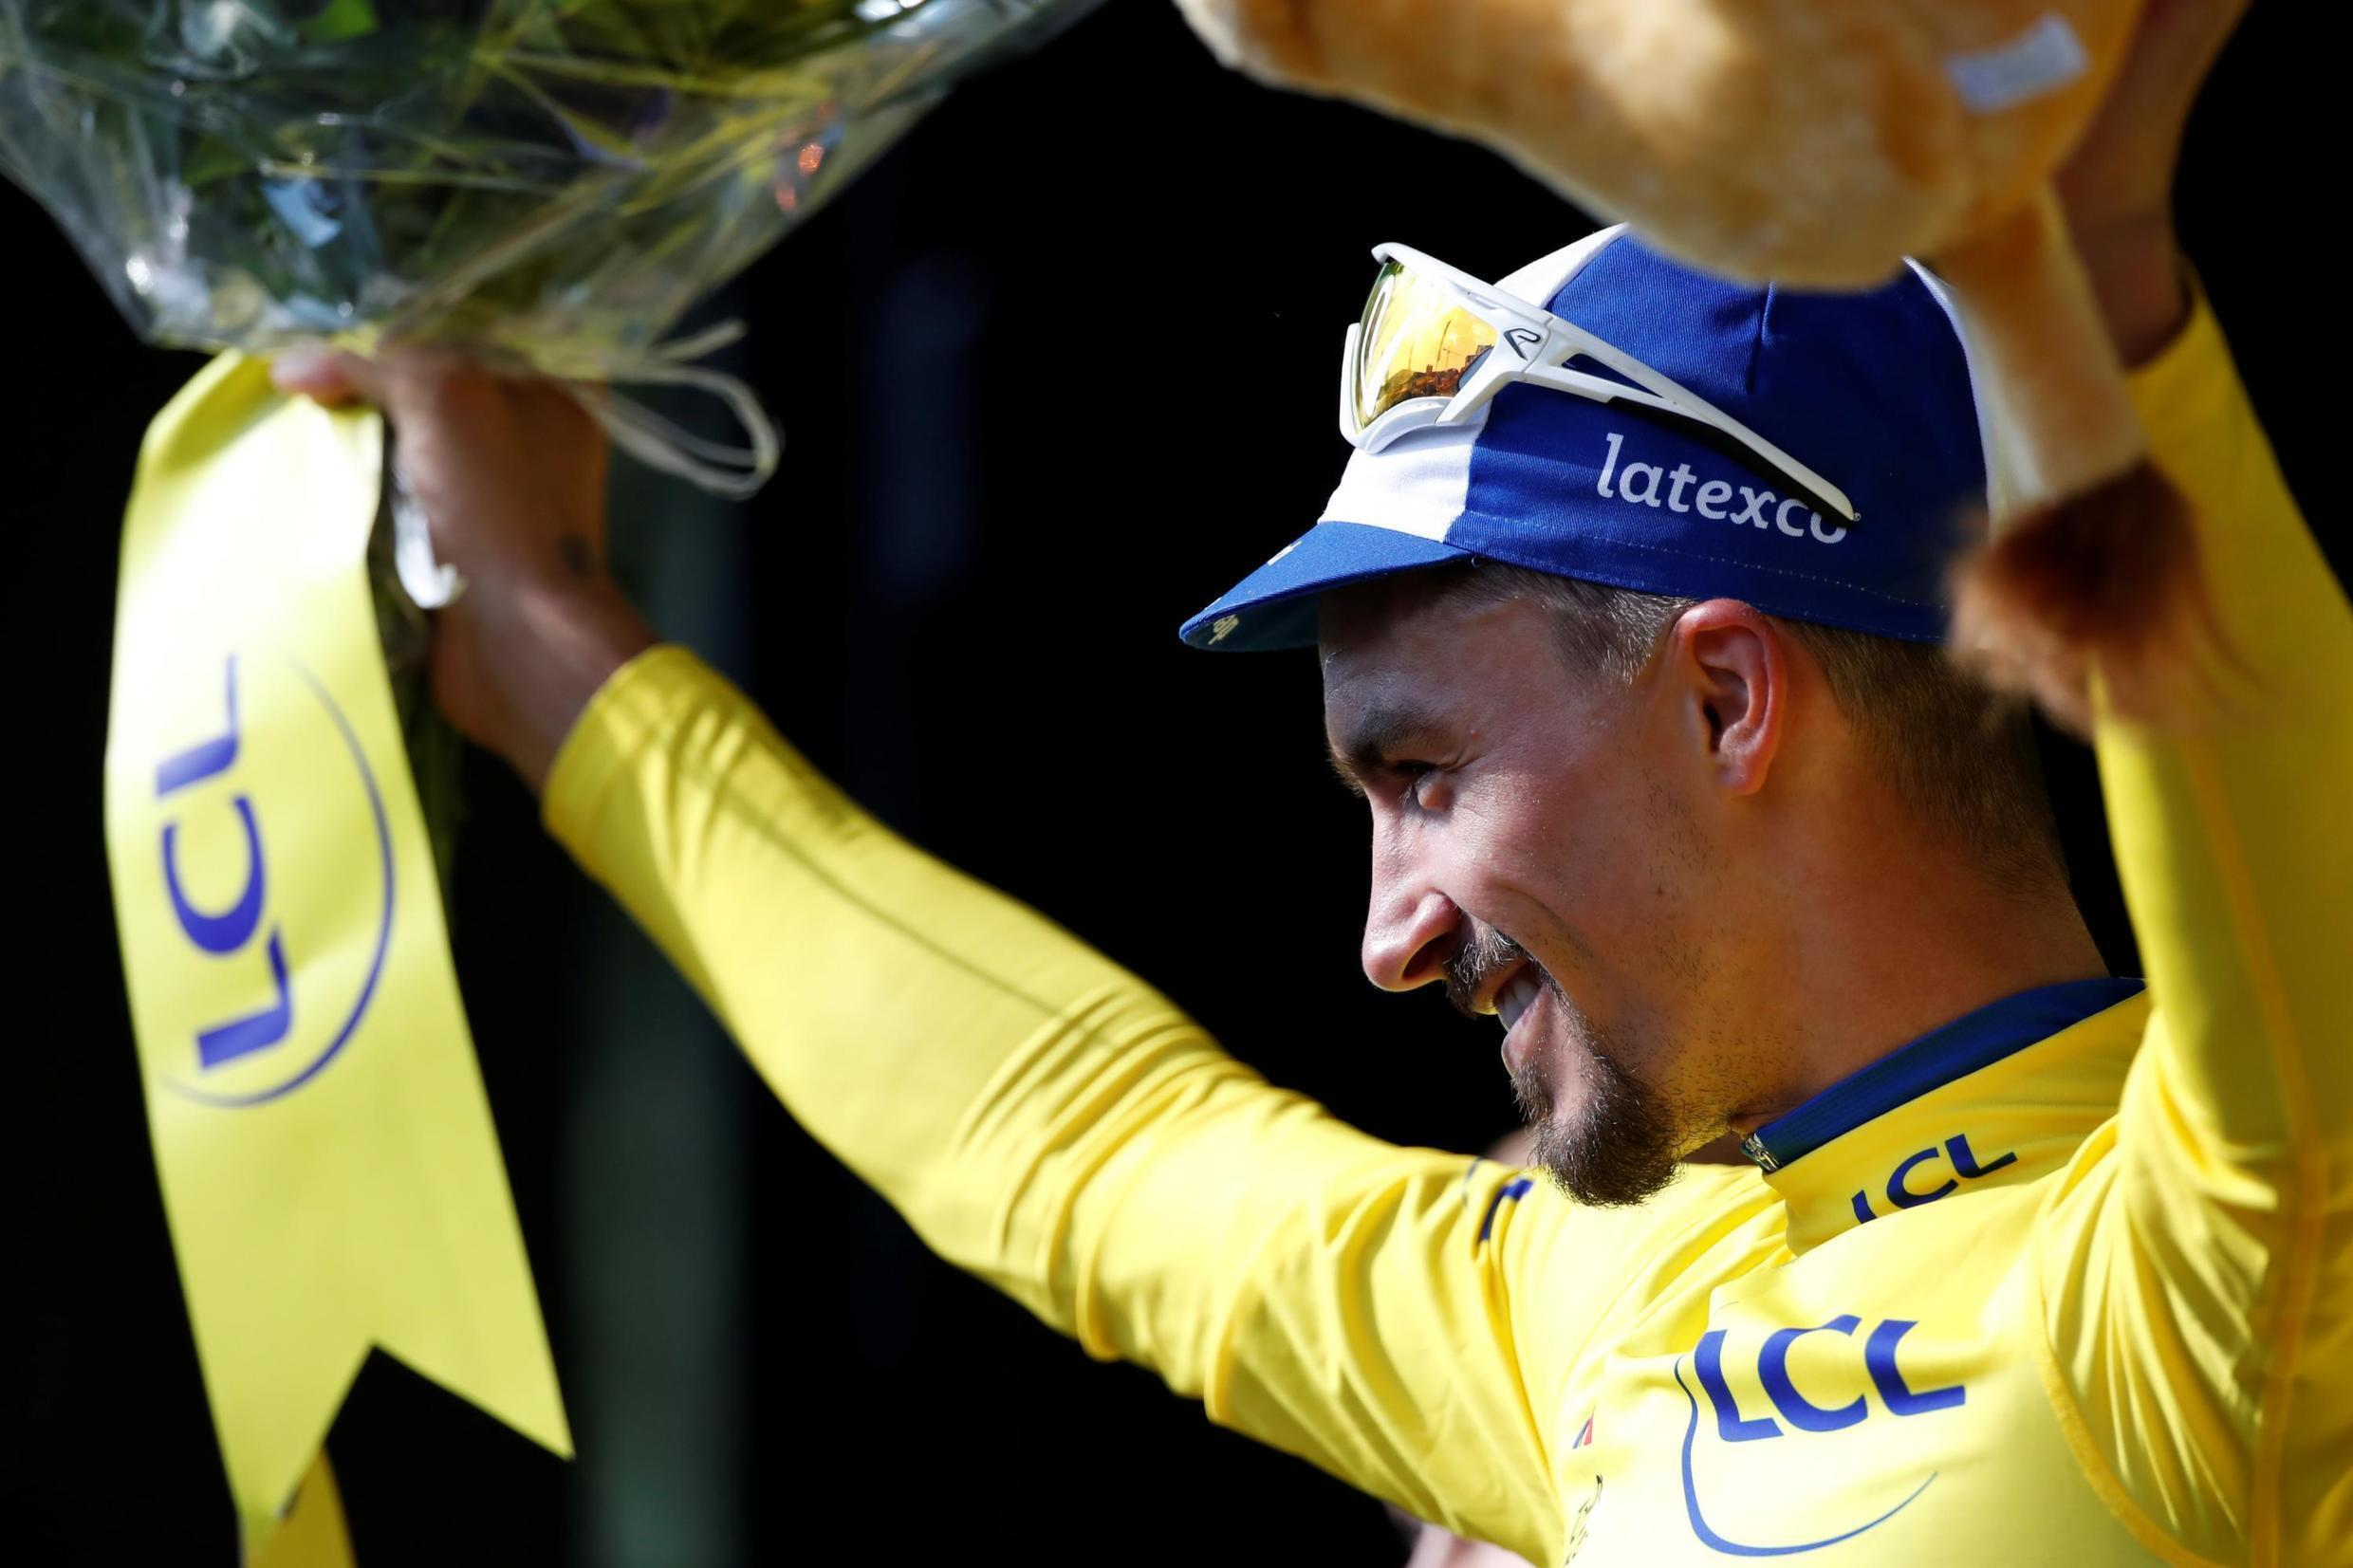 French rider Julian Alaphilippe celebrates on the podium, wearing the yellow jersey on 13 July 2019.